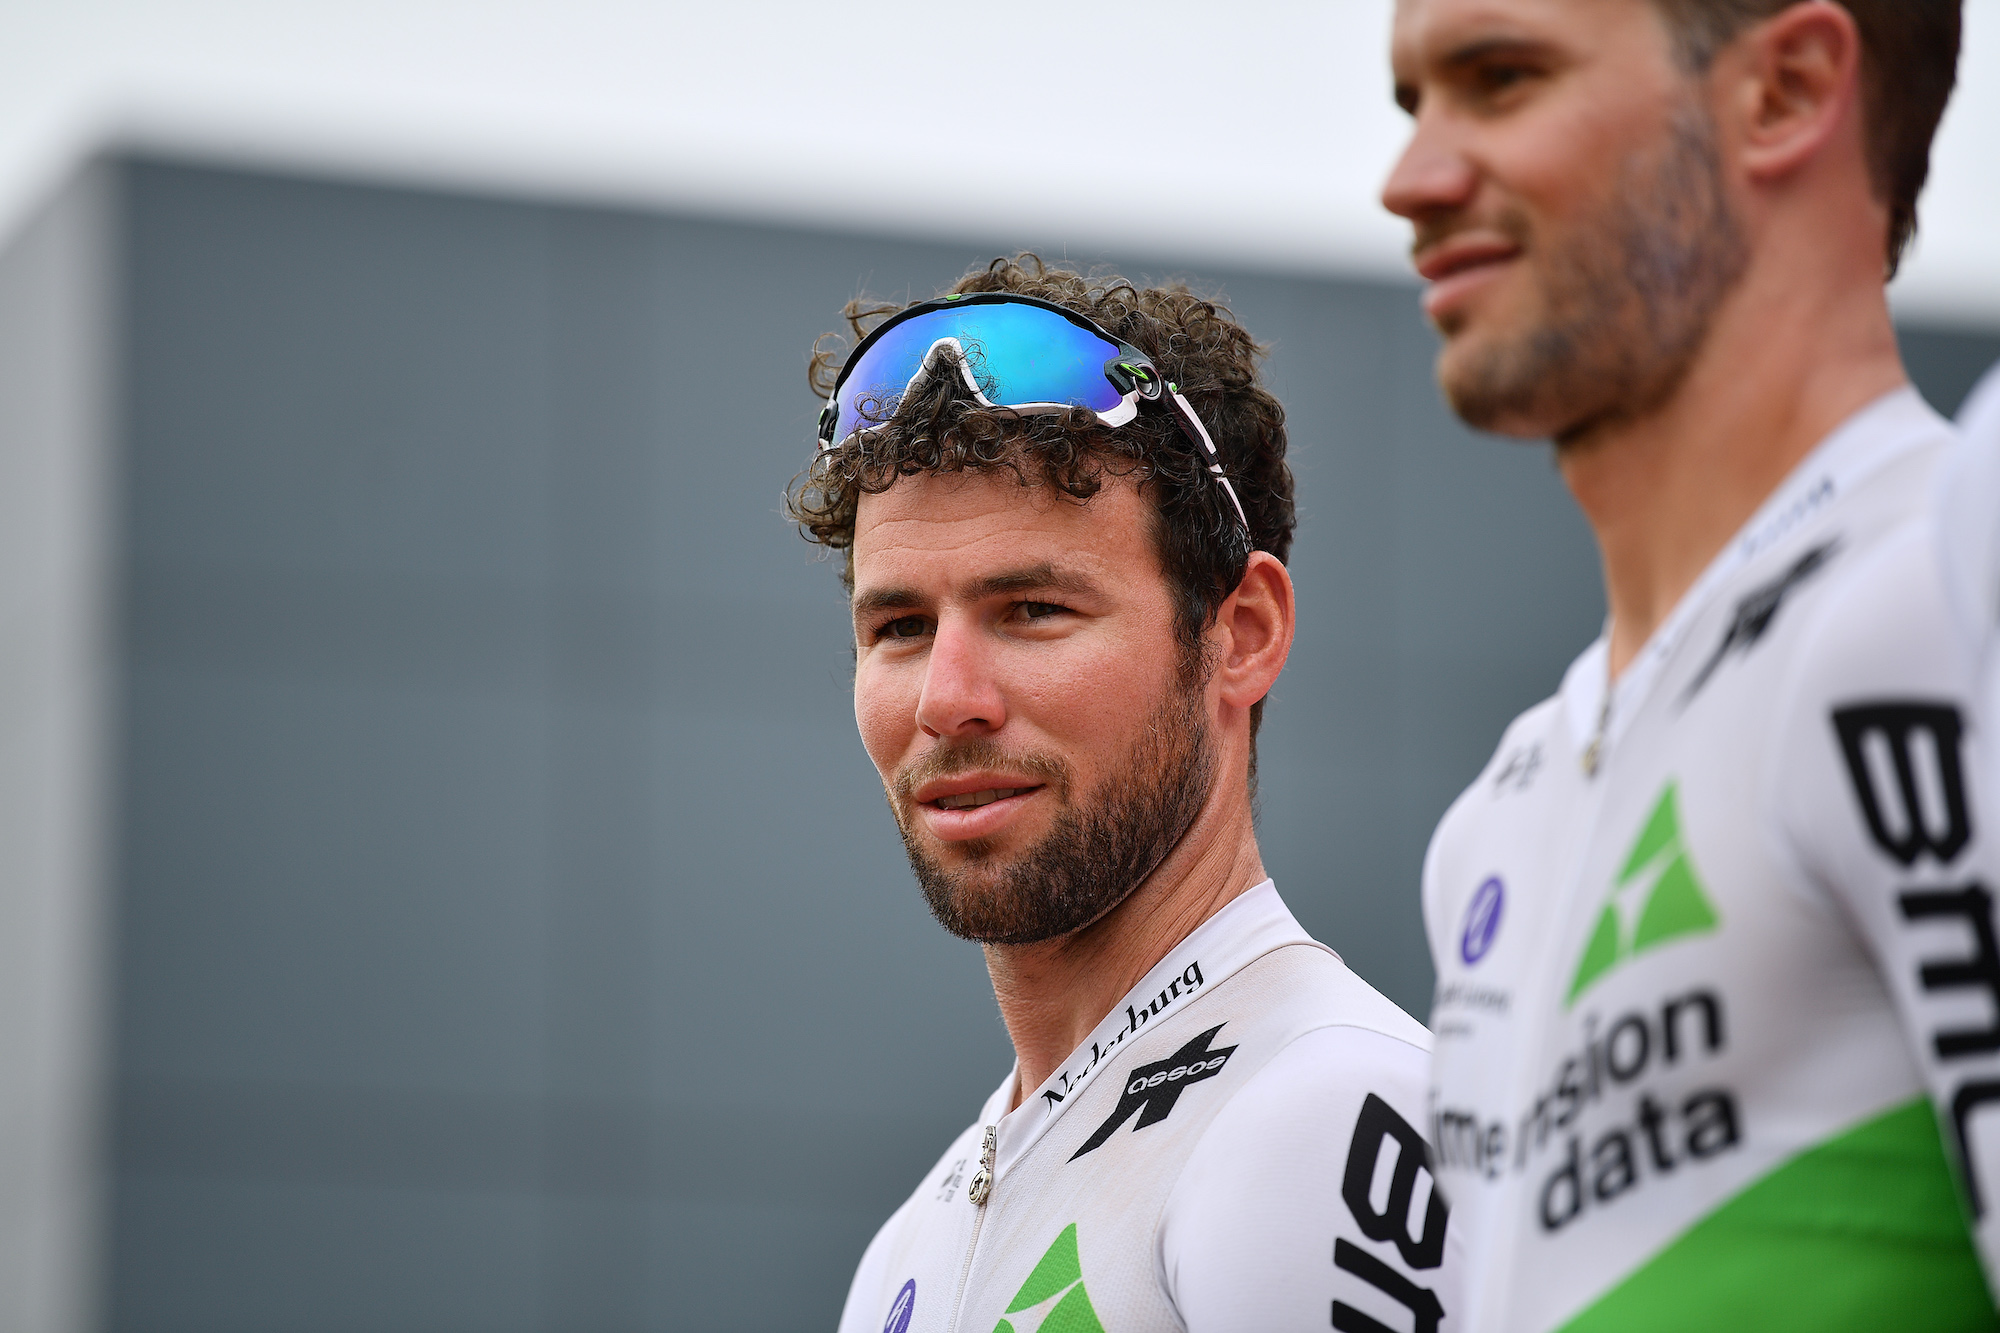 Mark Cavendish set to return to racing this week in Tour of Turkey - Cycling Weekly